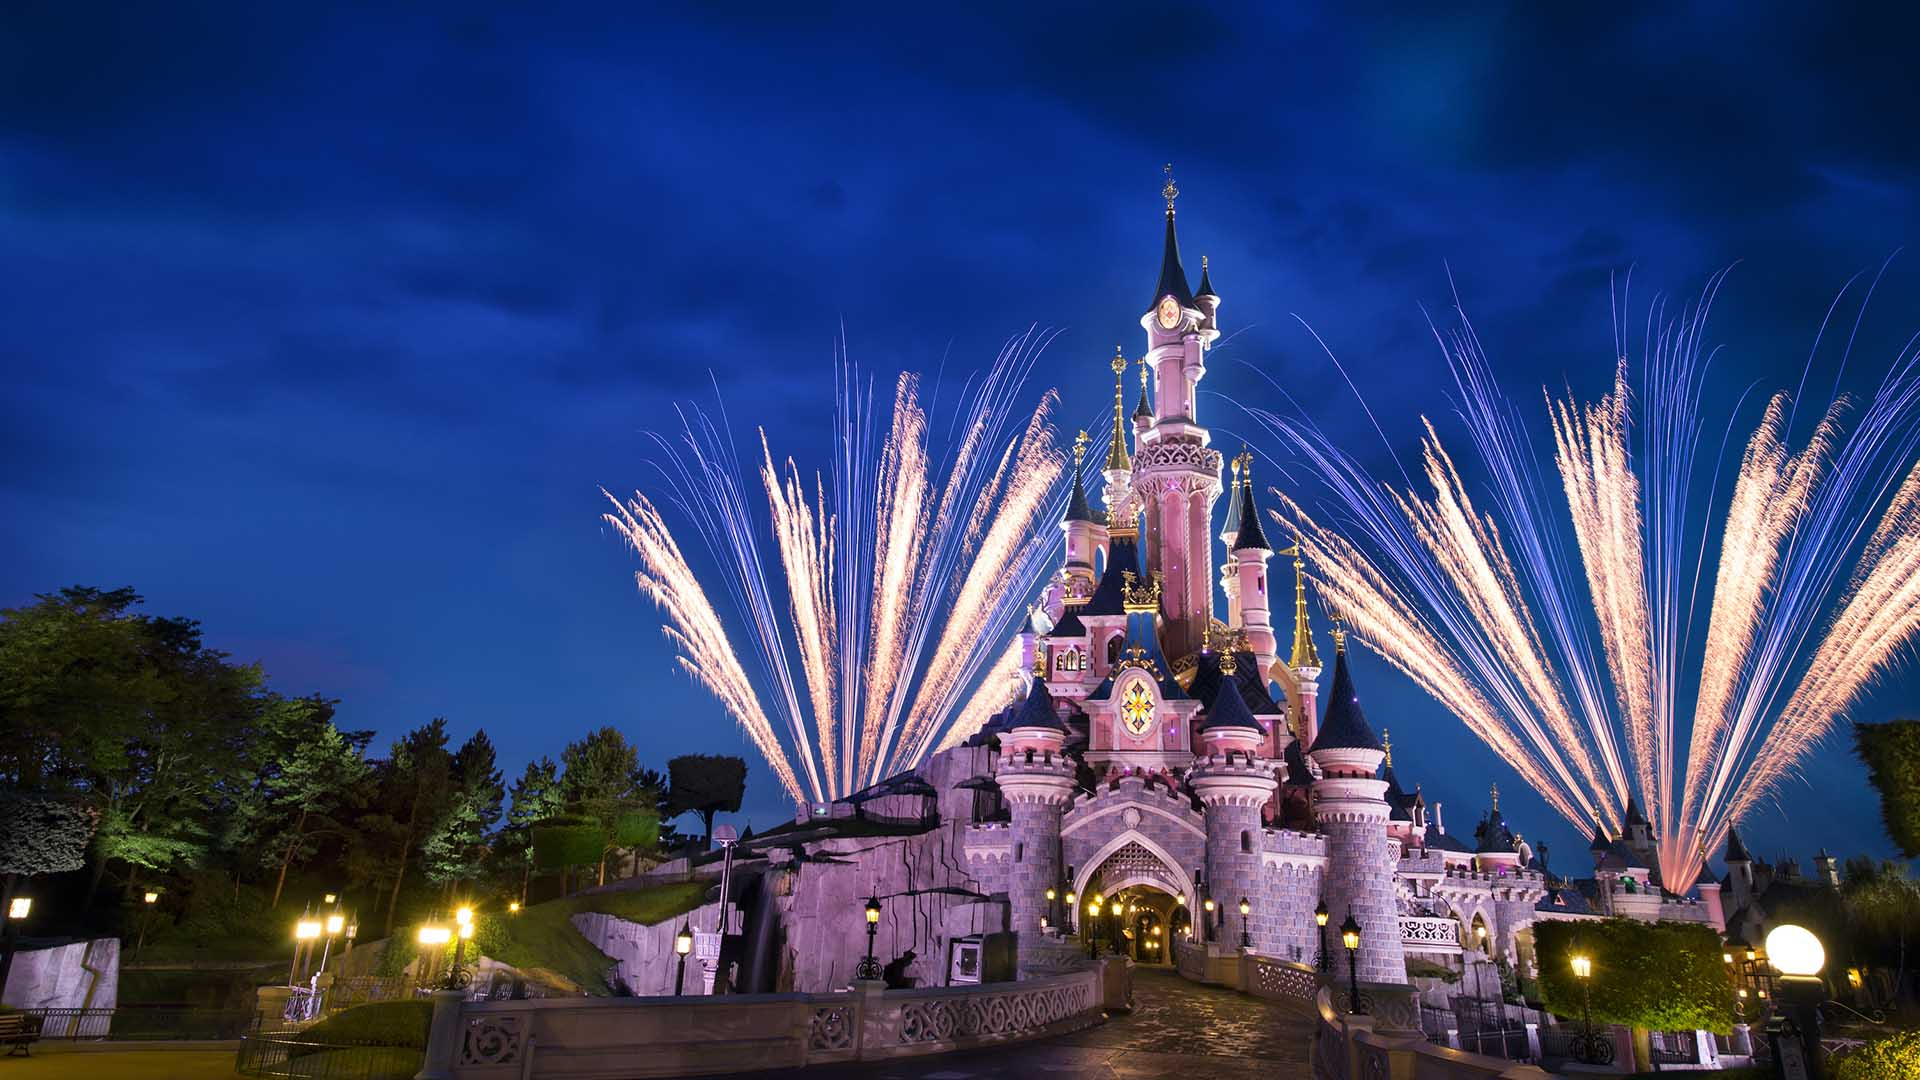 Disney's New 'Behind the Attraction' Docuseries Will Take You Inside Its Popular Theme Park Rides